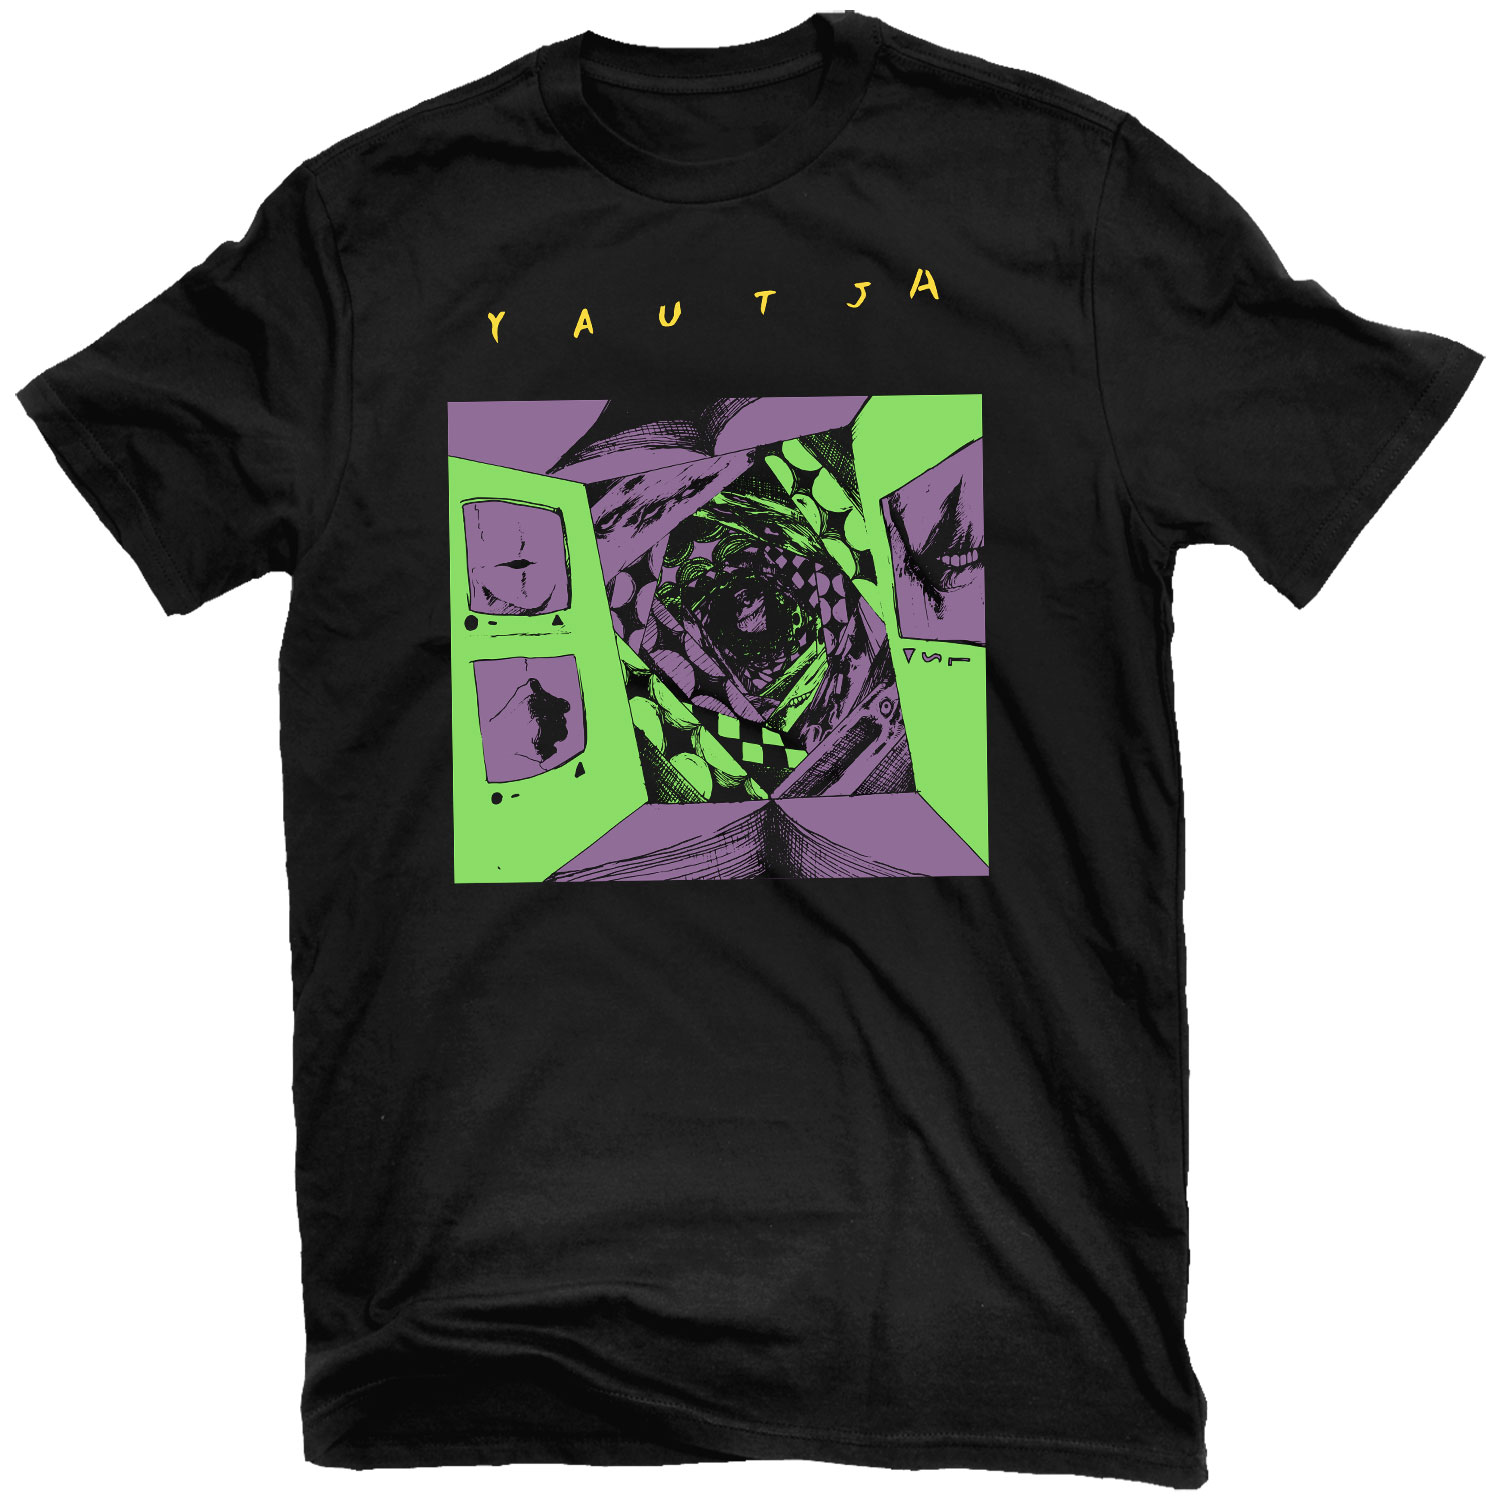 Wired Depths T Shirt + The Lurch CD Bundle